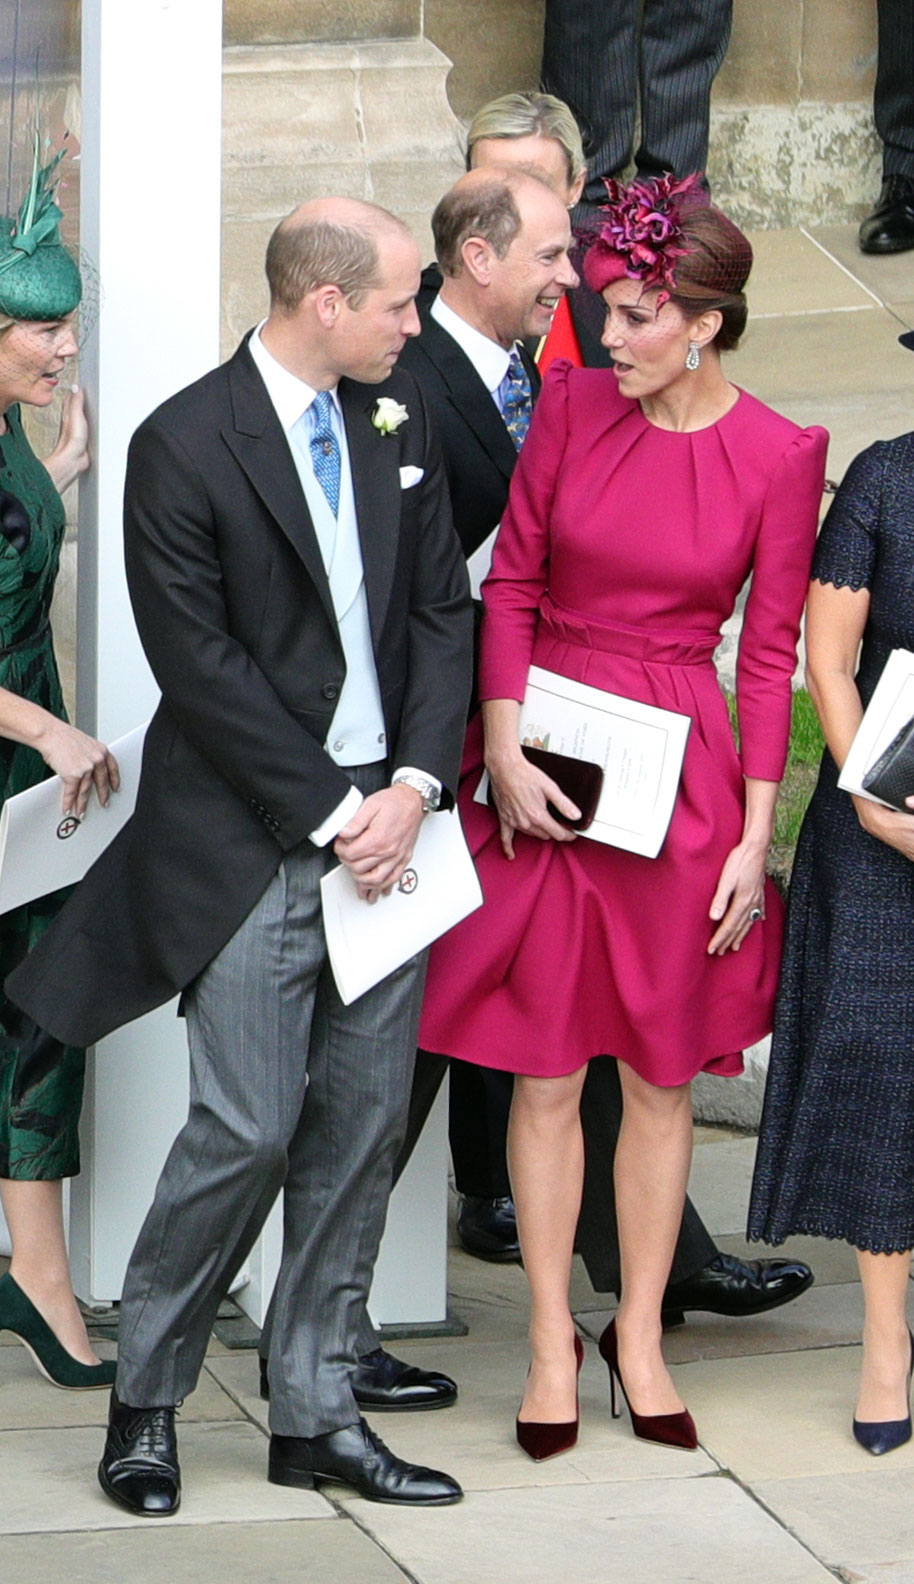 Prince William, the Duke of Cambridge and Catherine, the Duchess of Cambridge outside St George's Chapel following the wedding of Princess Eugenie to Jack Brooksbank.